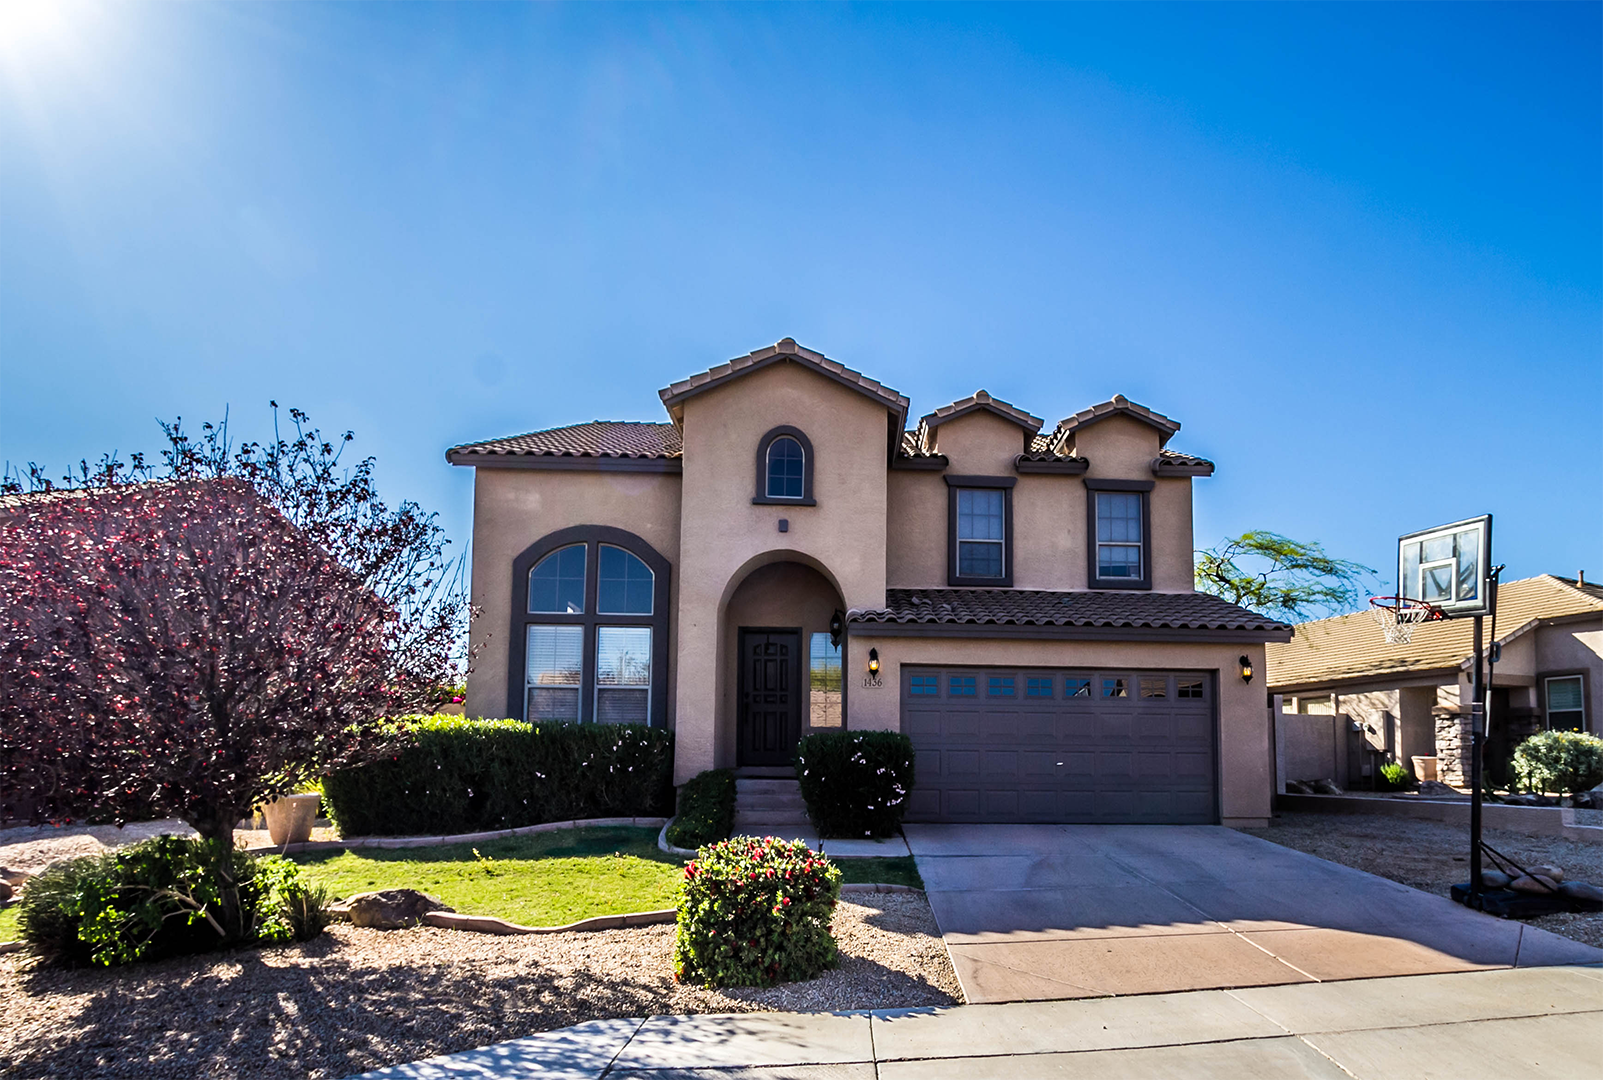 What Are The Most Popular Phoenix Home Styles And Where Are They?